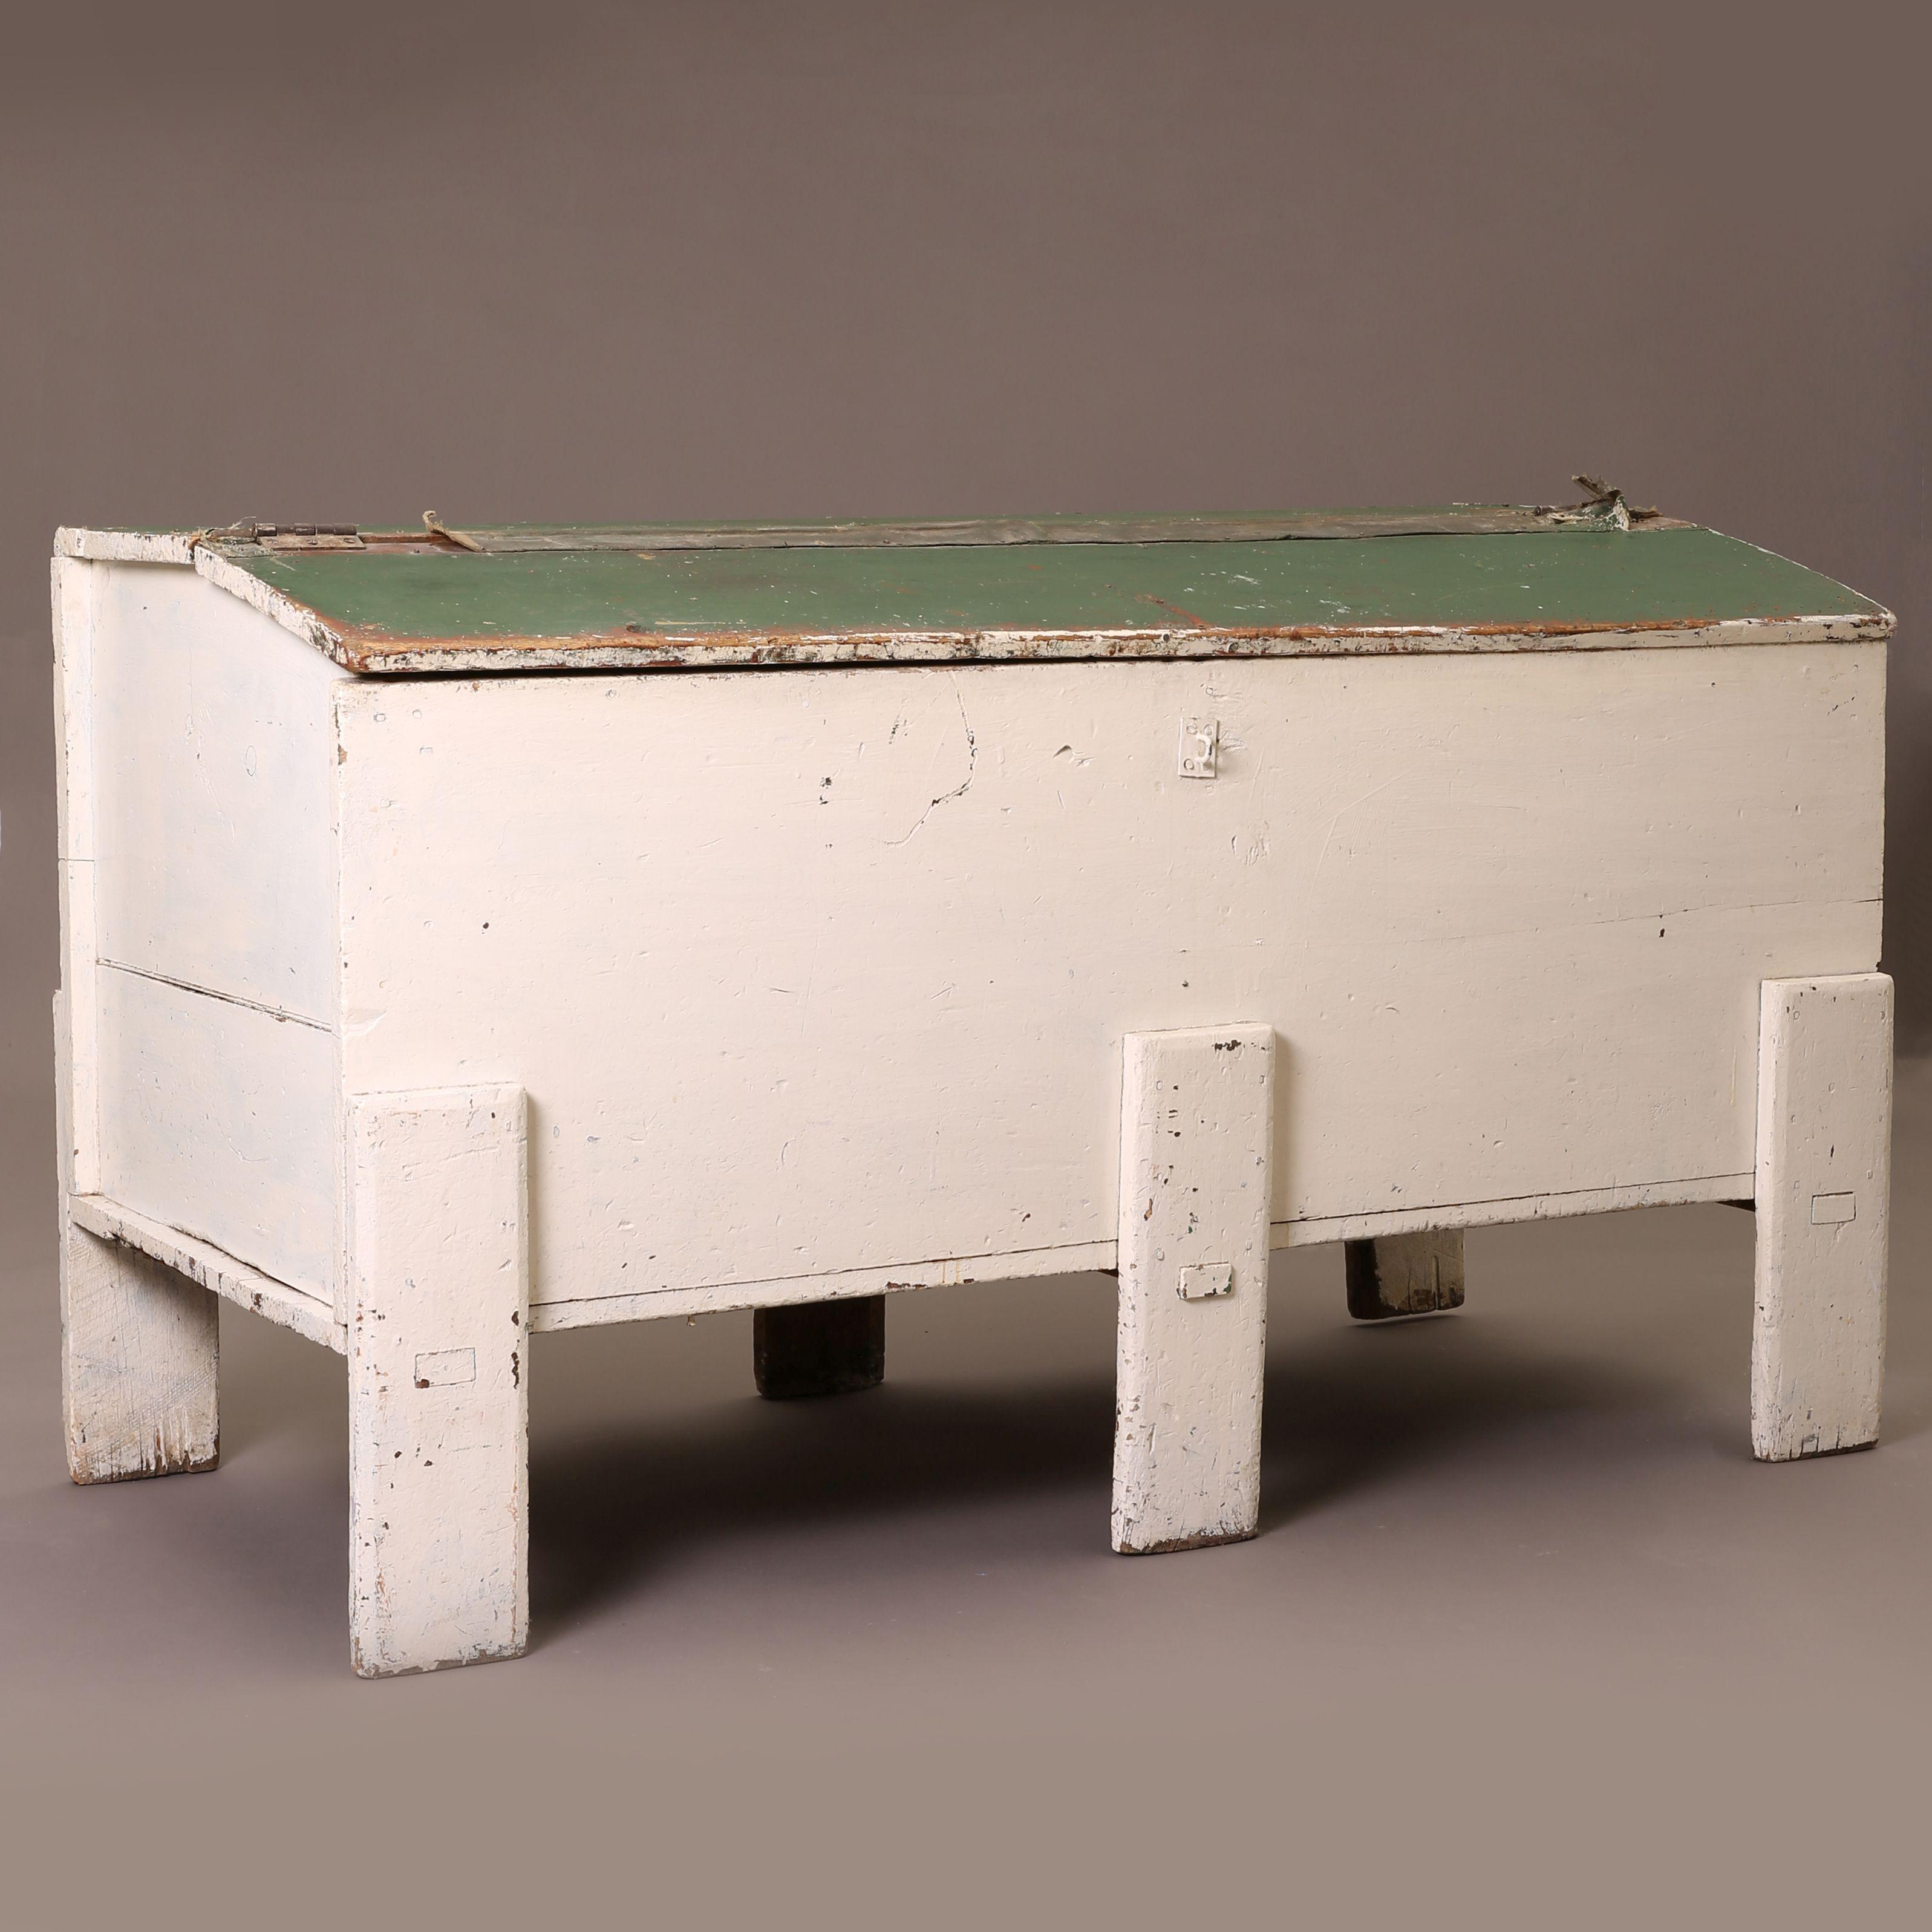 New Mexico, Painted Grain Chest with Legs, 20th c.